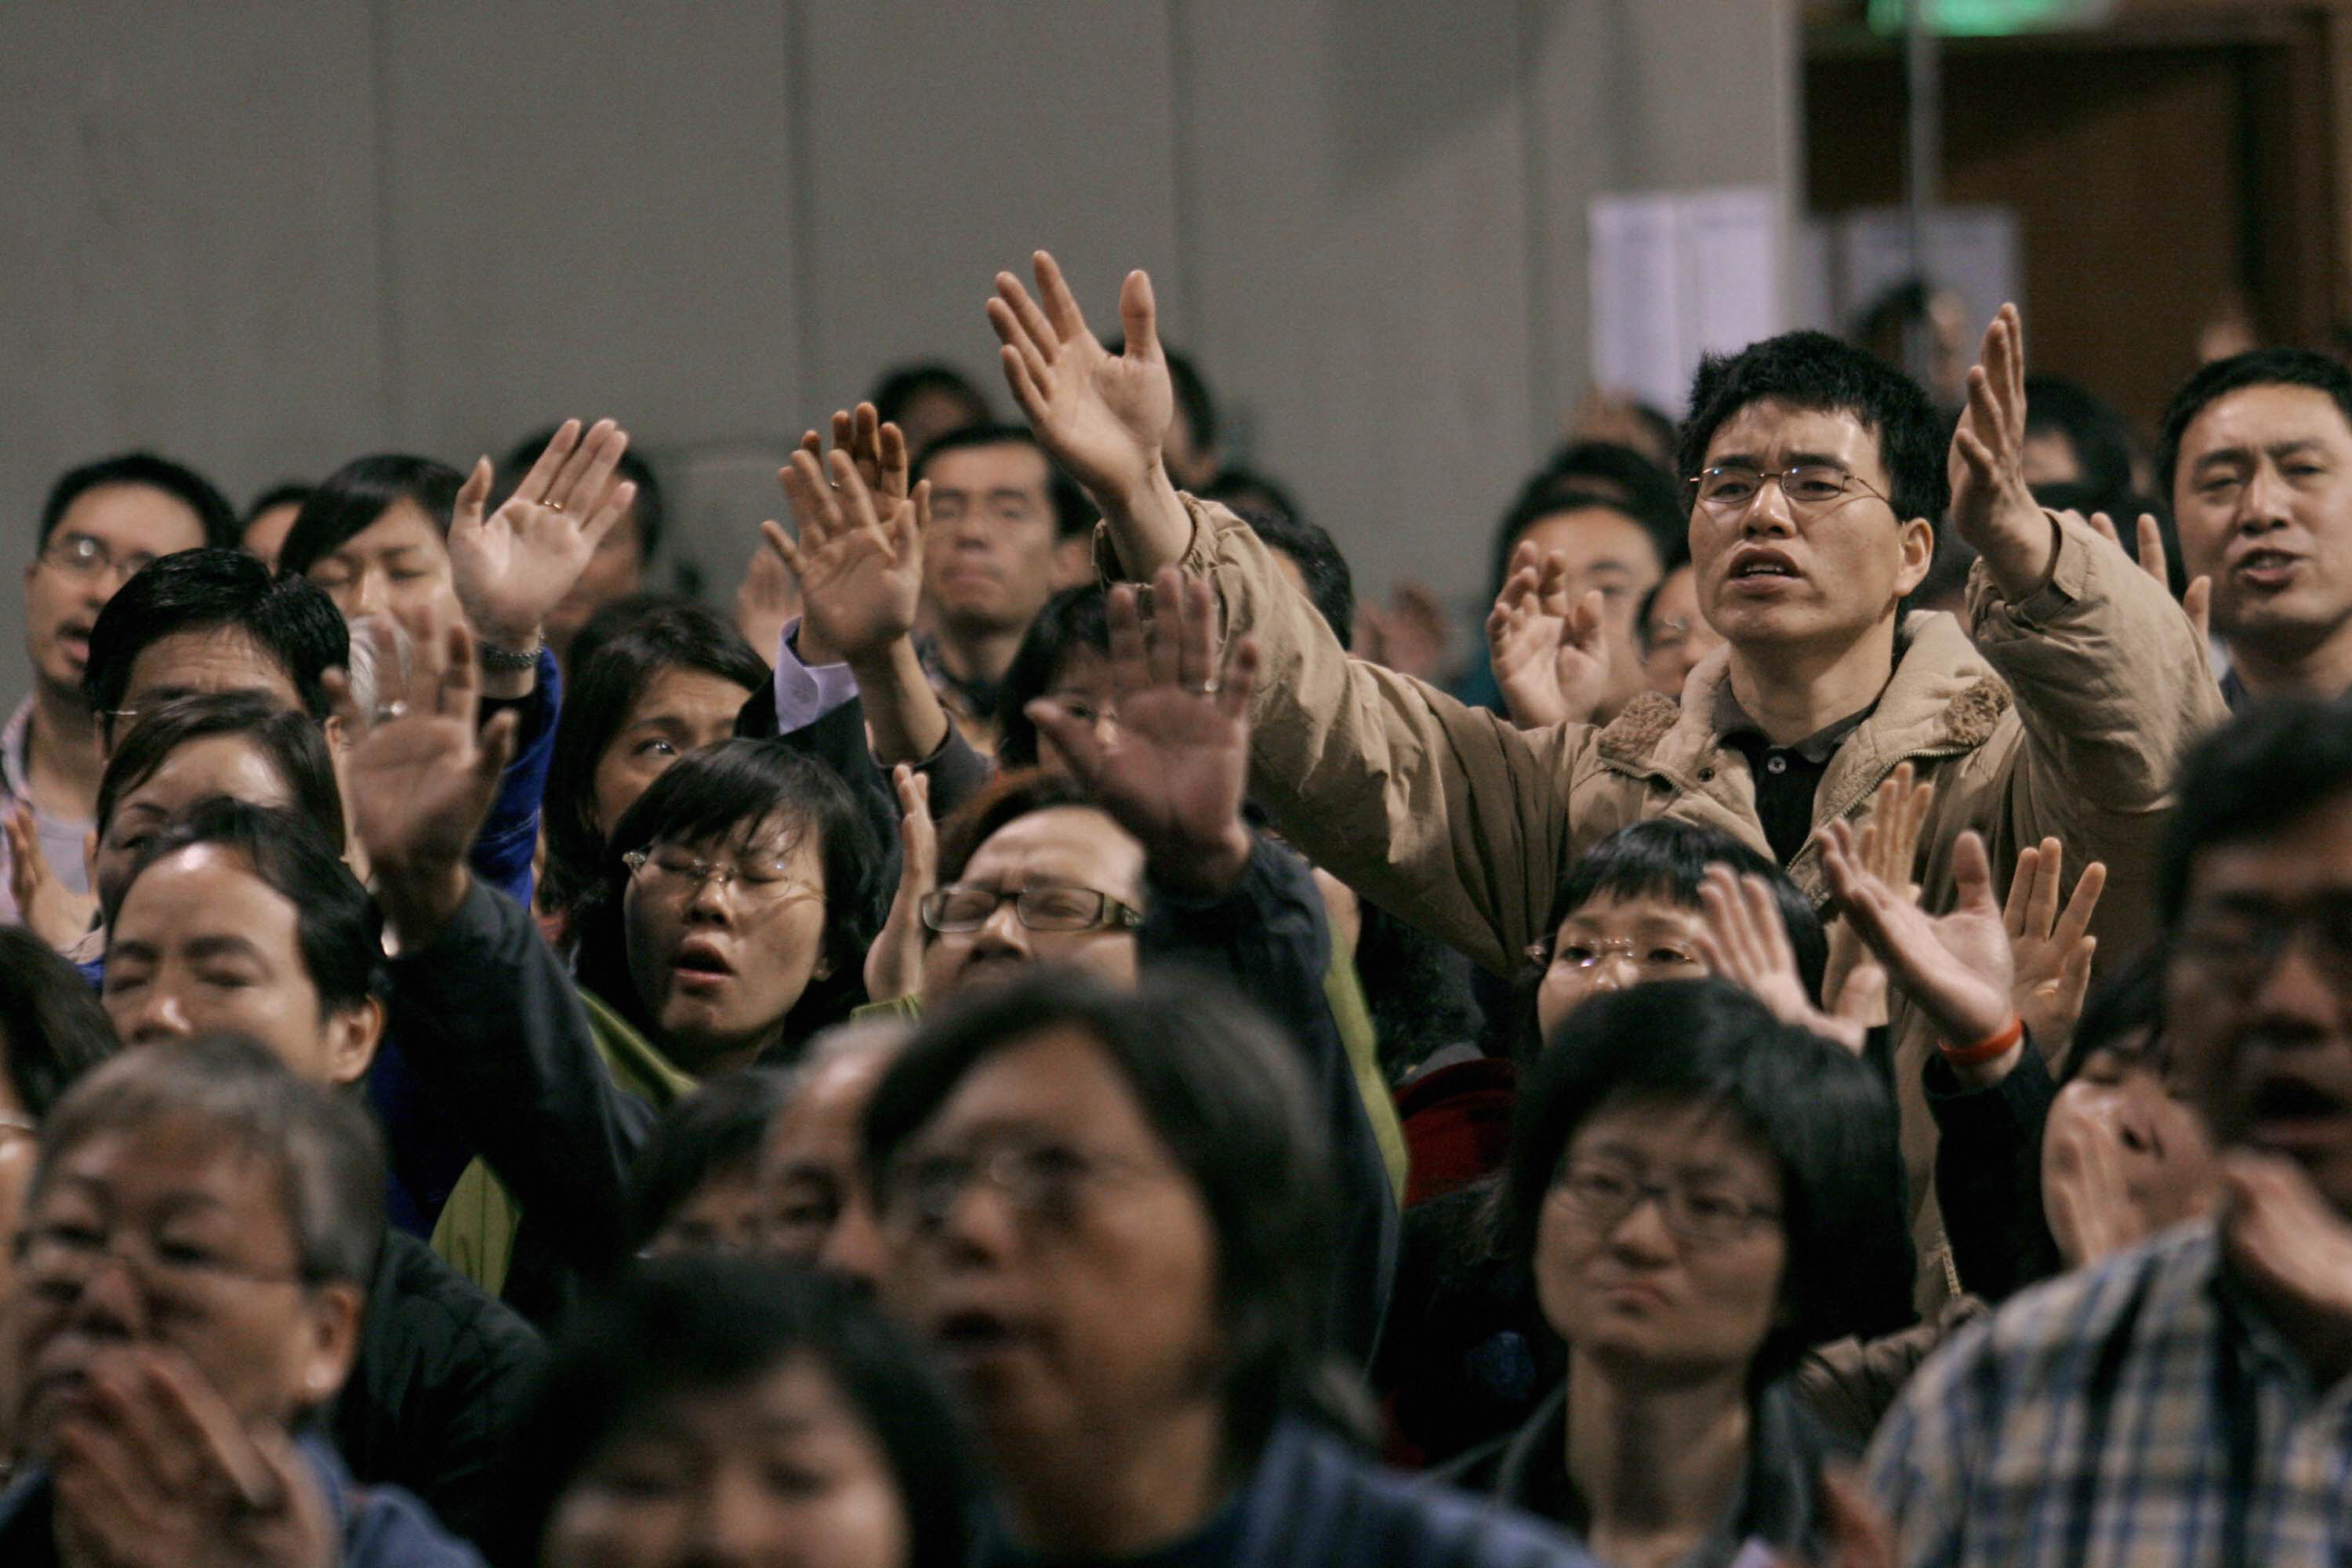 Participants raise their hands in prayer during the first Global Chinese Alpha conference in Hong Kong, April 10, 2007.